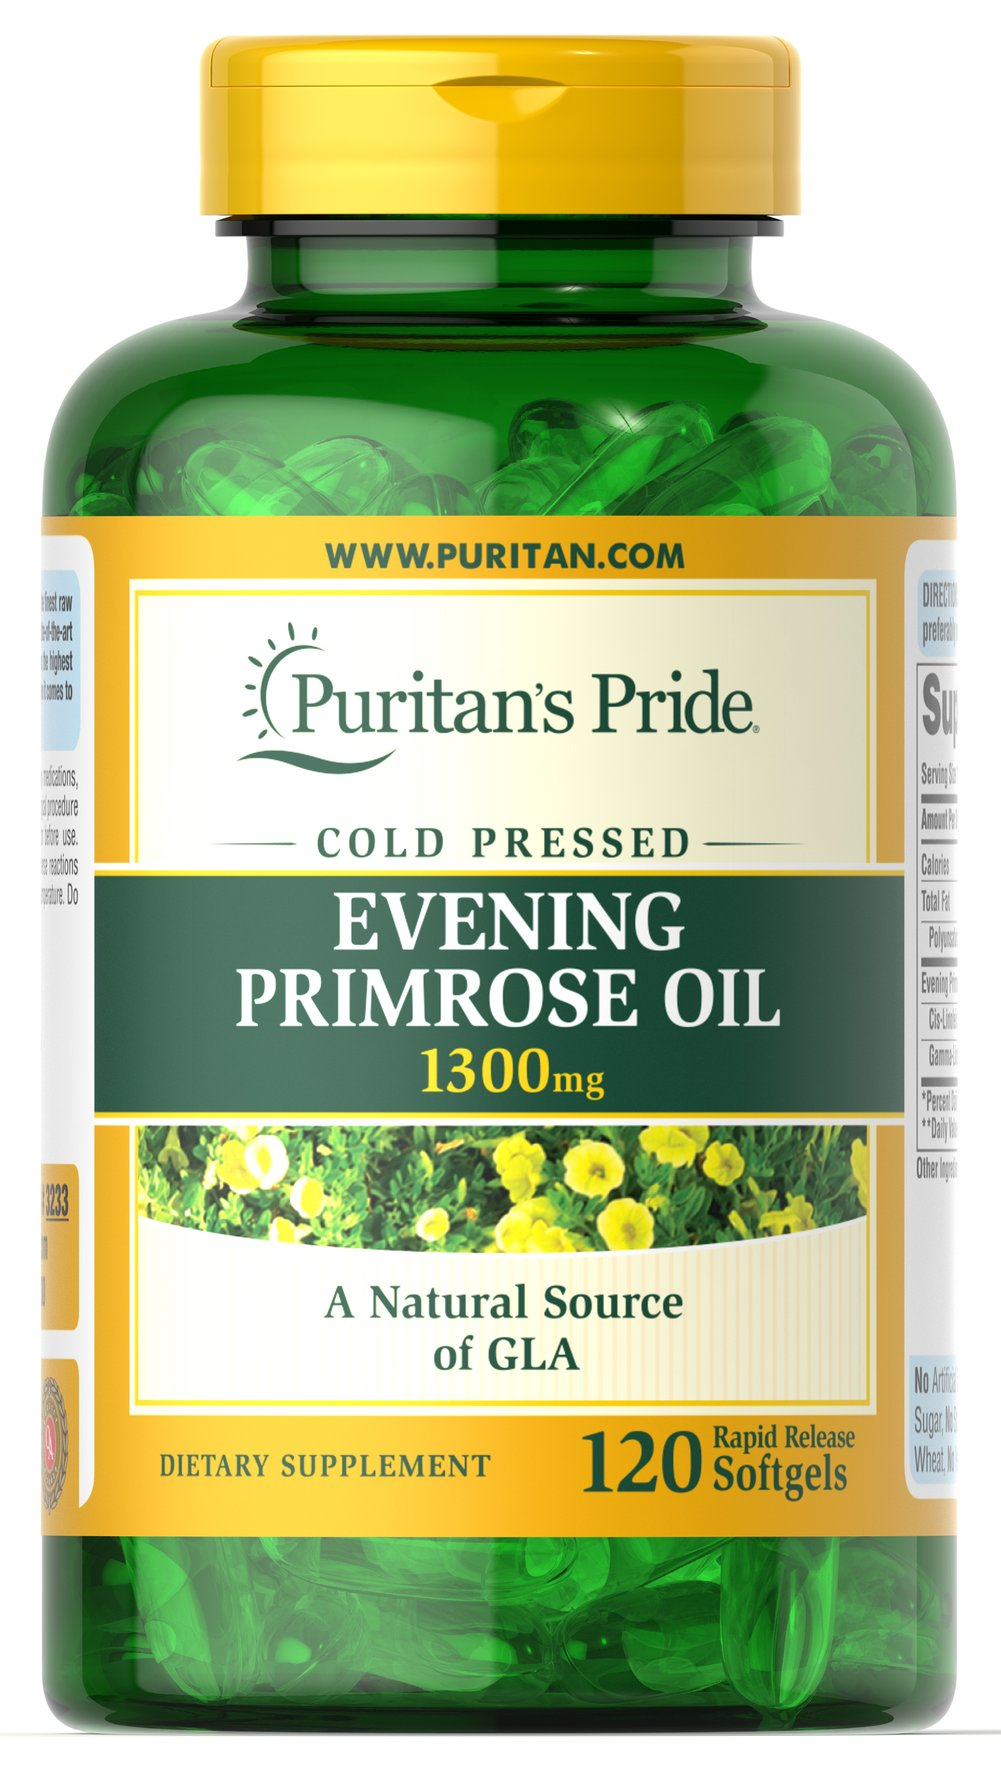 Evening Primrose Oil 1300 mg with GLA  120 Softgels 1300 mg $23.99